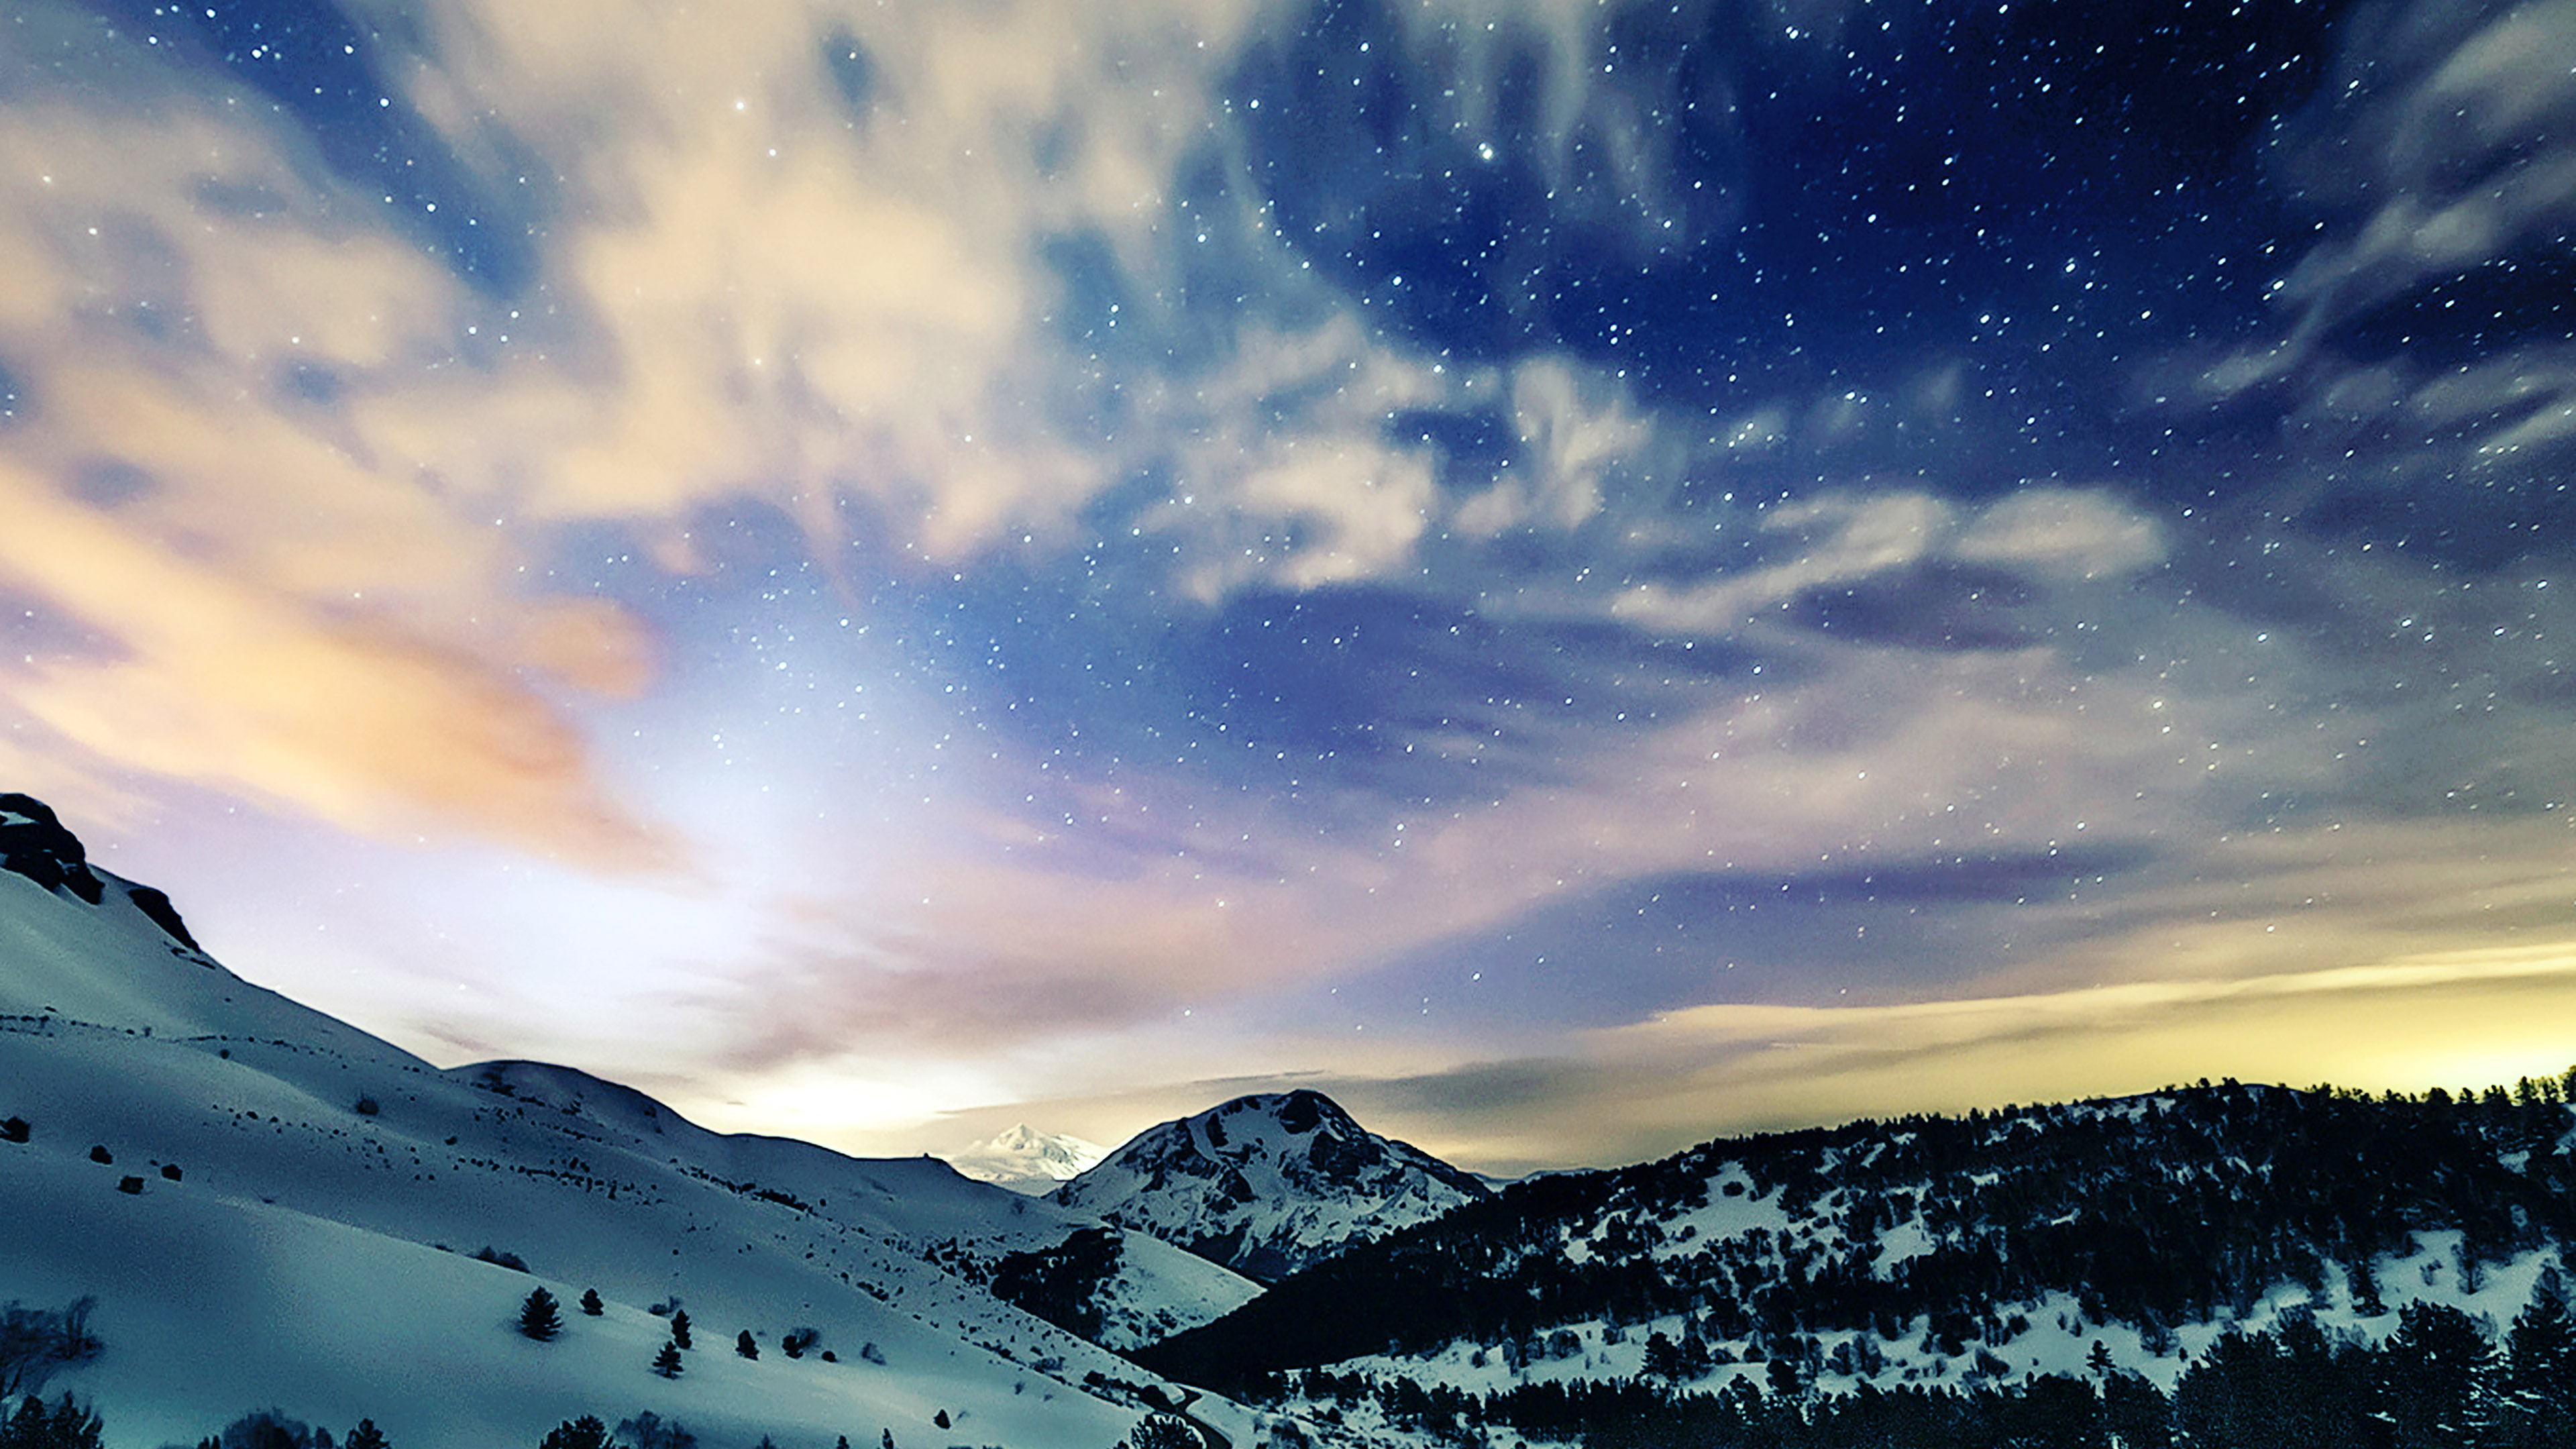 Fall Wallpaper For Macbook Pro Mk79 Aurora Star Sky Snow Night Mountain Winter Nature